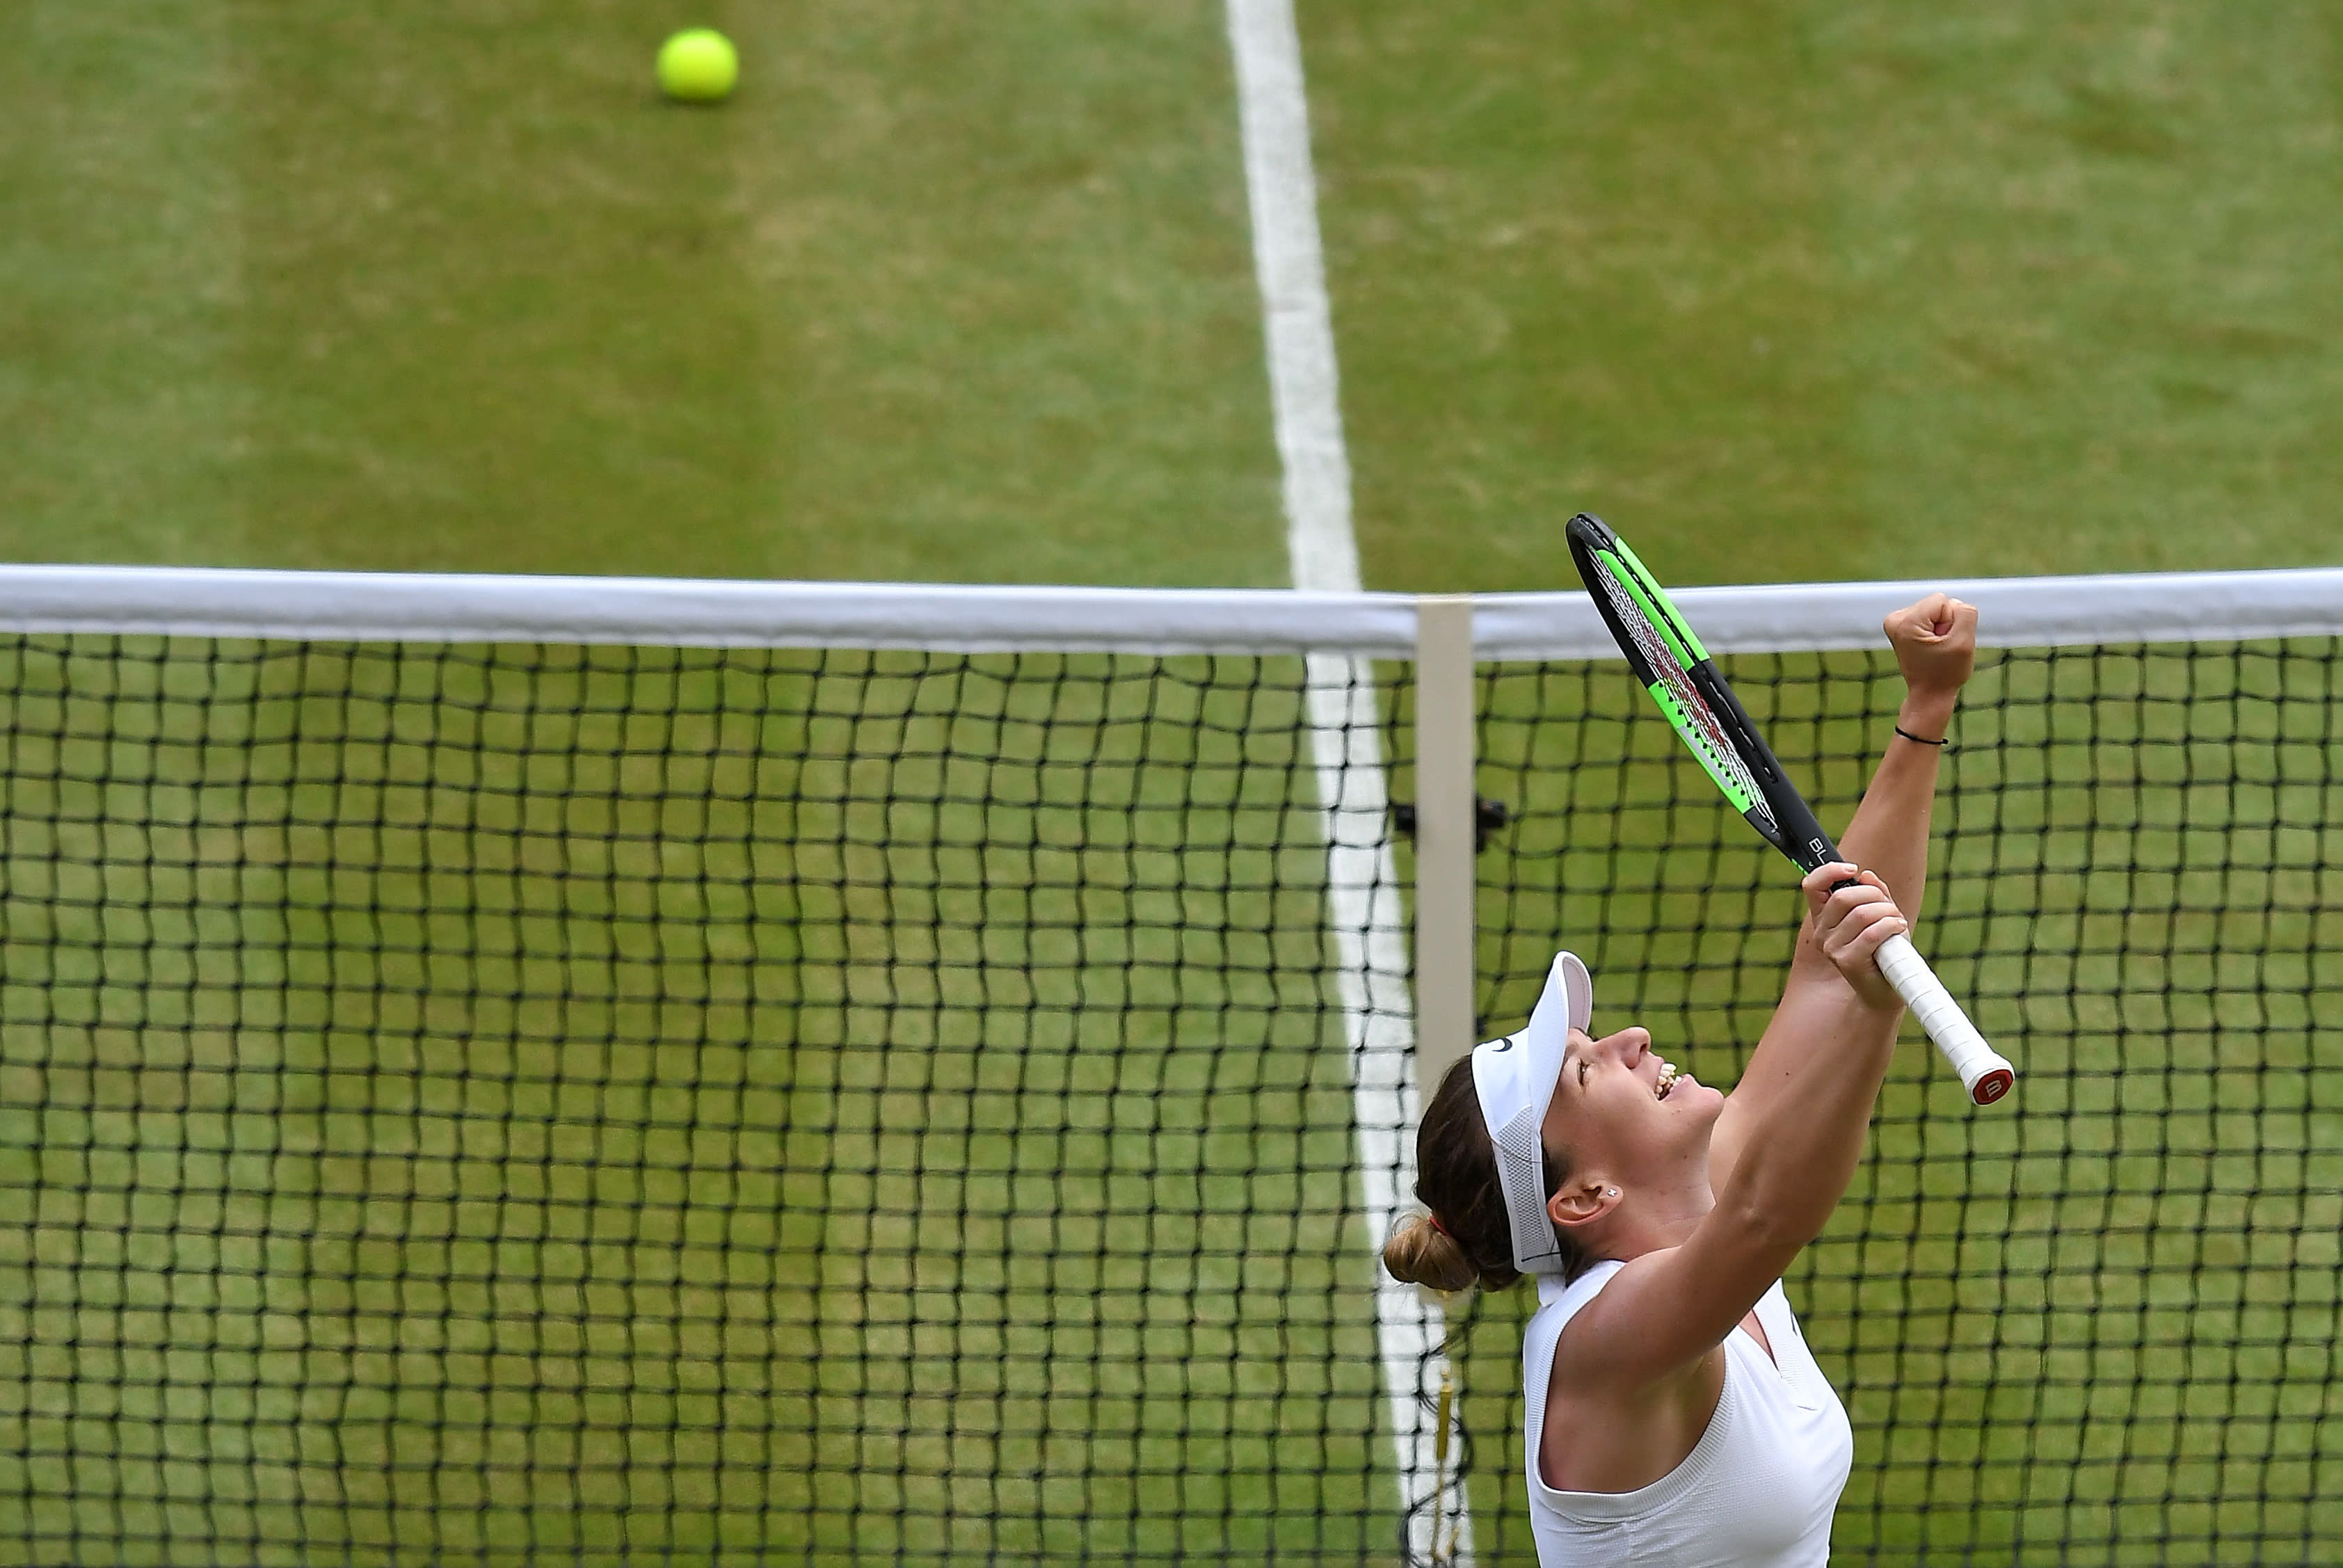 Serena Williams v Simona Halep - Wimbledon women's singles final